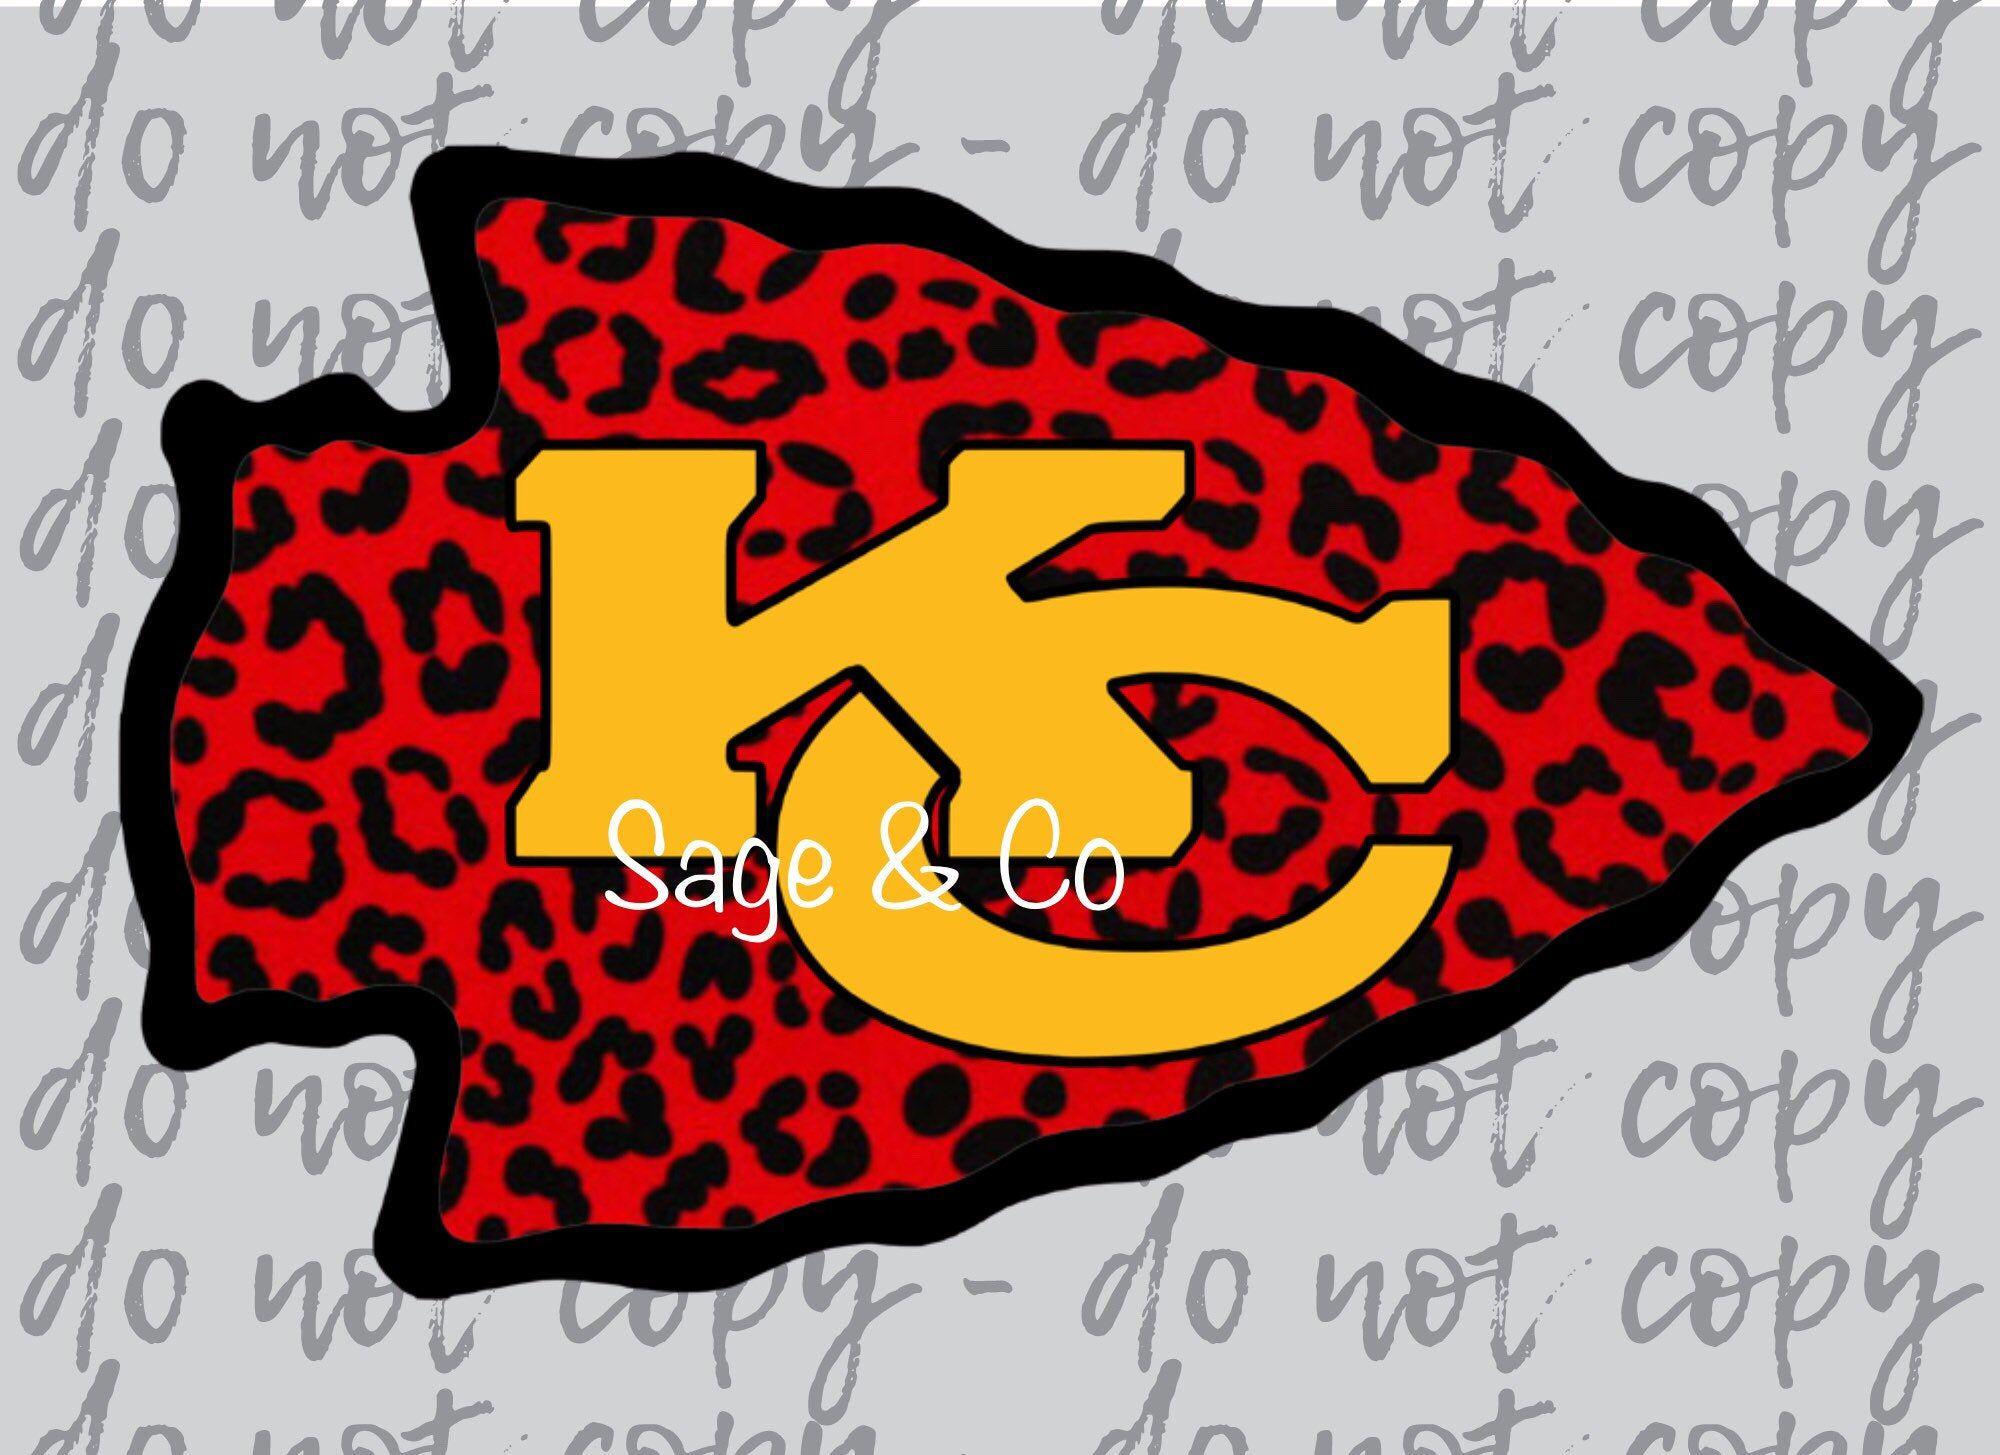 Kc Chiefs Cheetah Arrowhead Rts Sublimation Transfer Ready To Press Transfer Full Color Ready To Ship In 2020 Kc Chiefs Kansas City Chiefs Football Light Colored Fabric